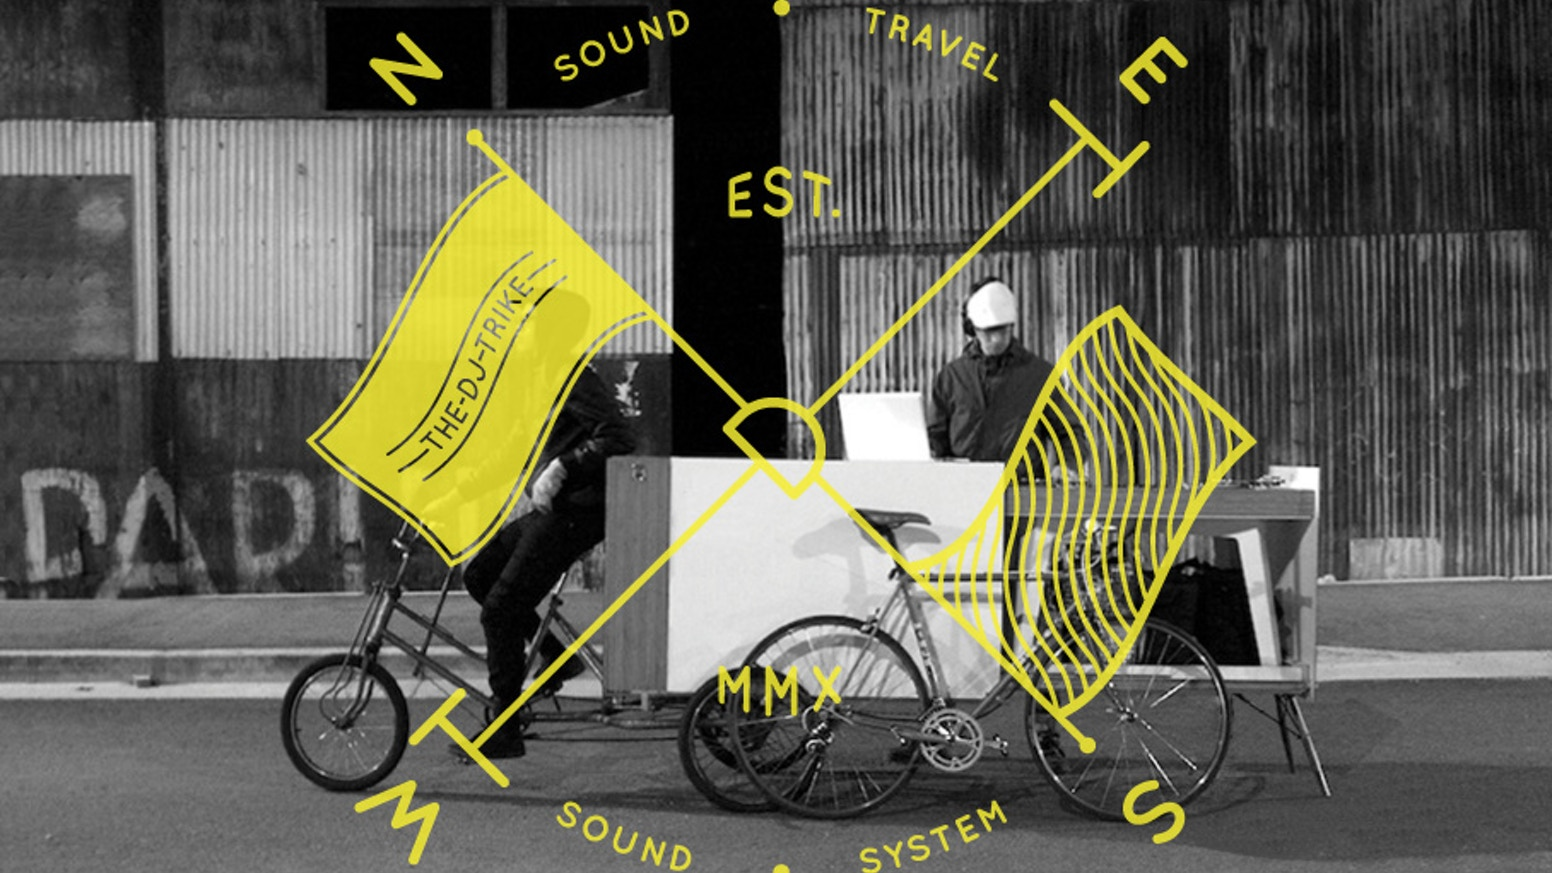 A pedal-powered soundsystem, public art + design project, and cycling initiative on three wheels.